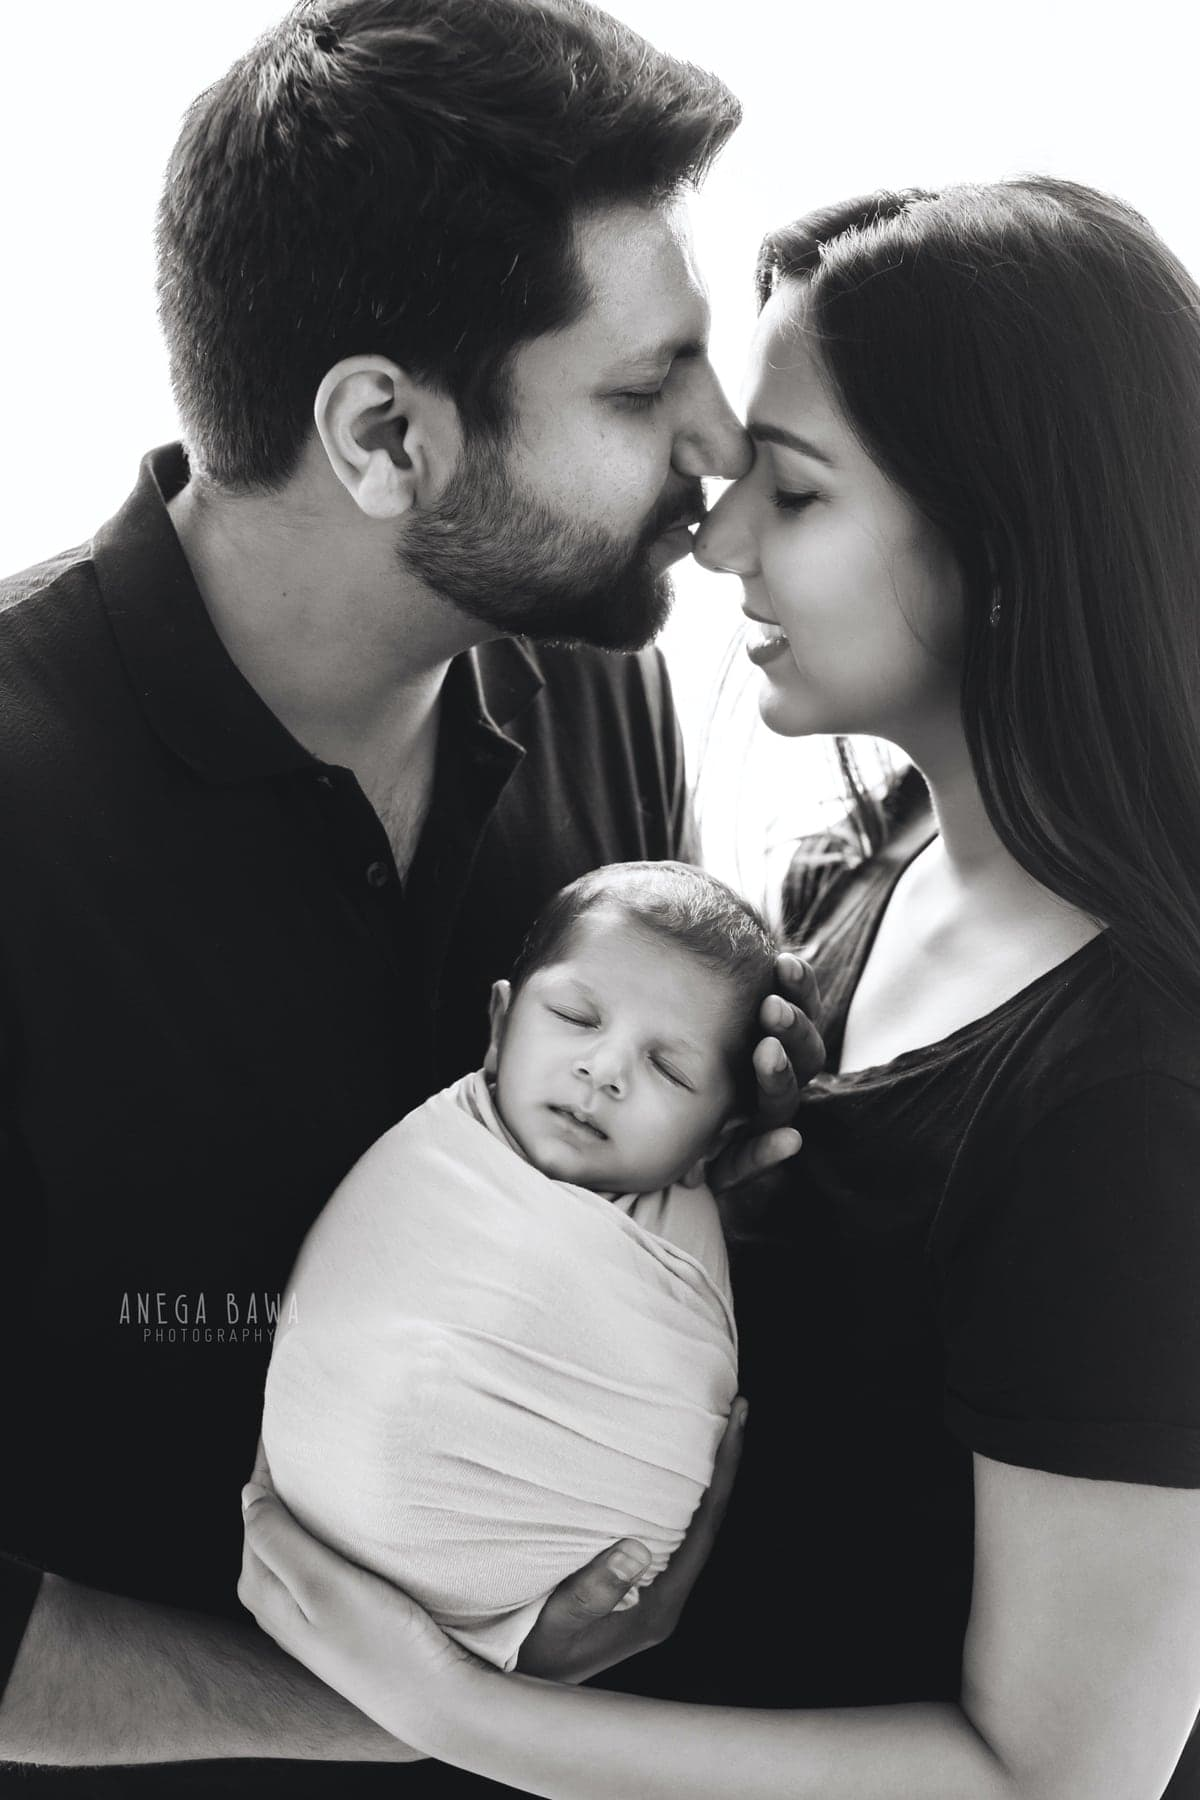 245108-family-black-white-newborn-photography-delhi-21-days-baby-photoshoot-gurgaon-anega-bawa